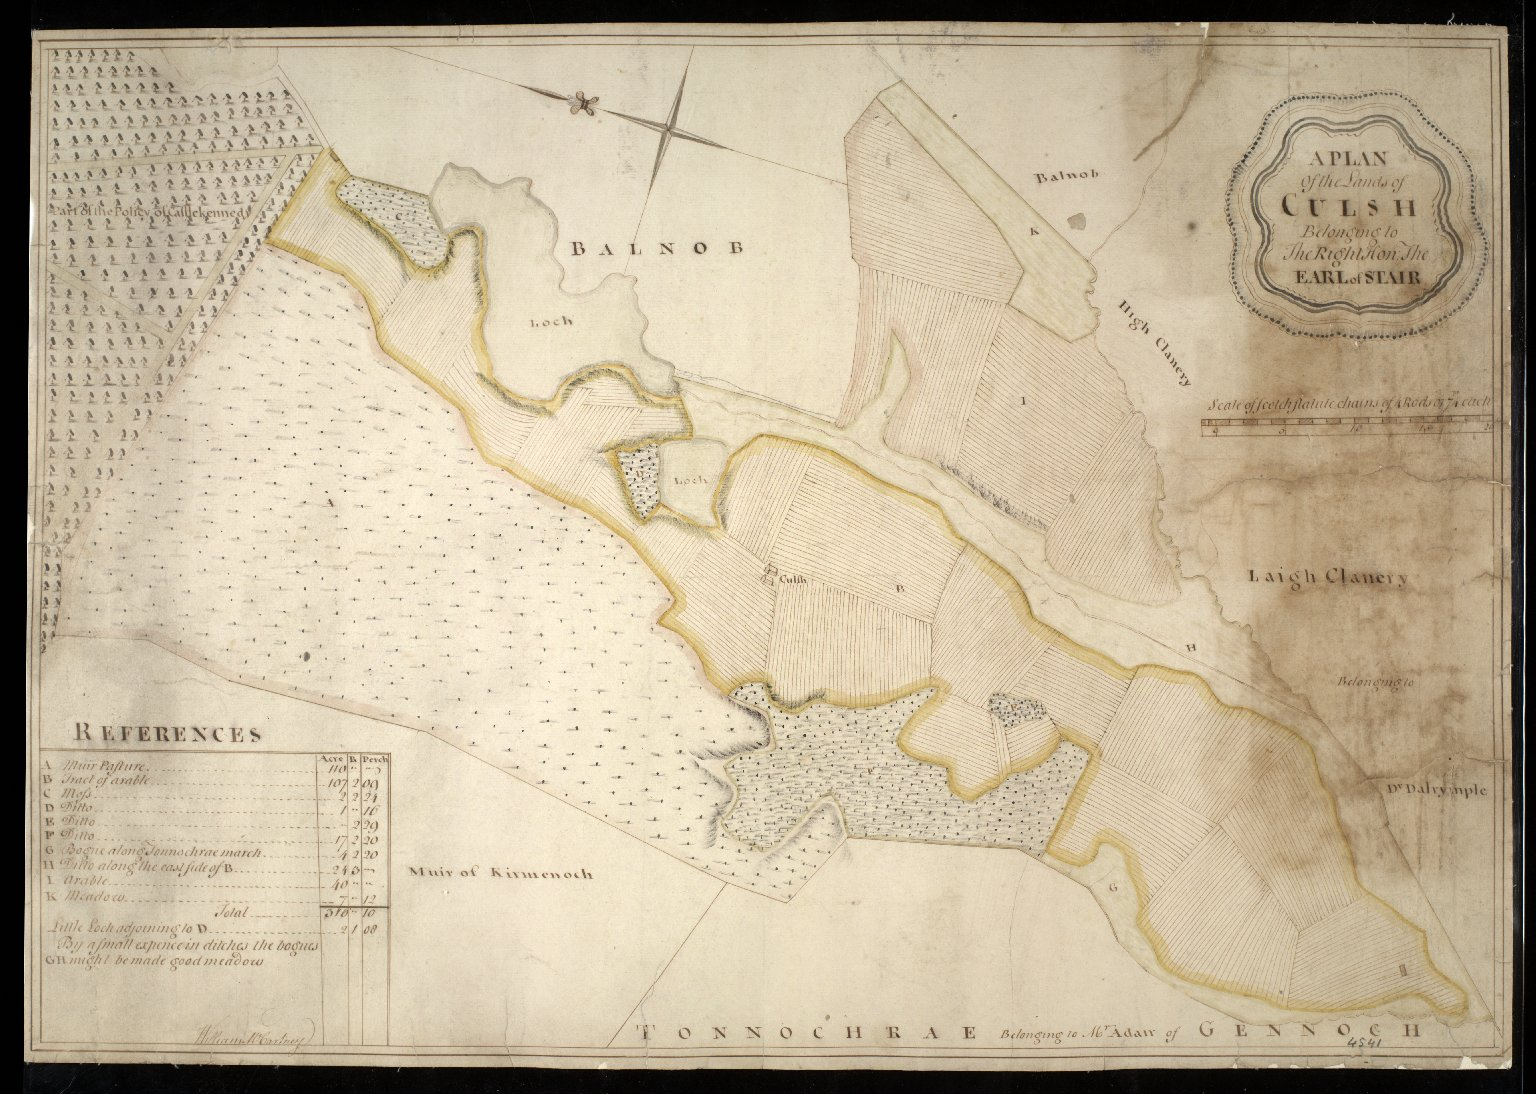 A Plan of the Lands of Culsh Belonging to The Right Hon. The Earl of Stair [1 of 1]